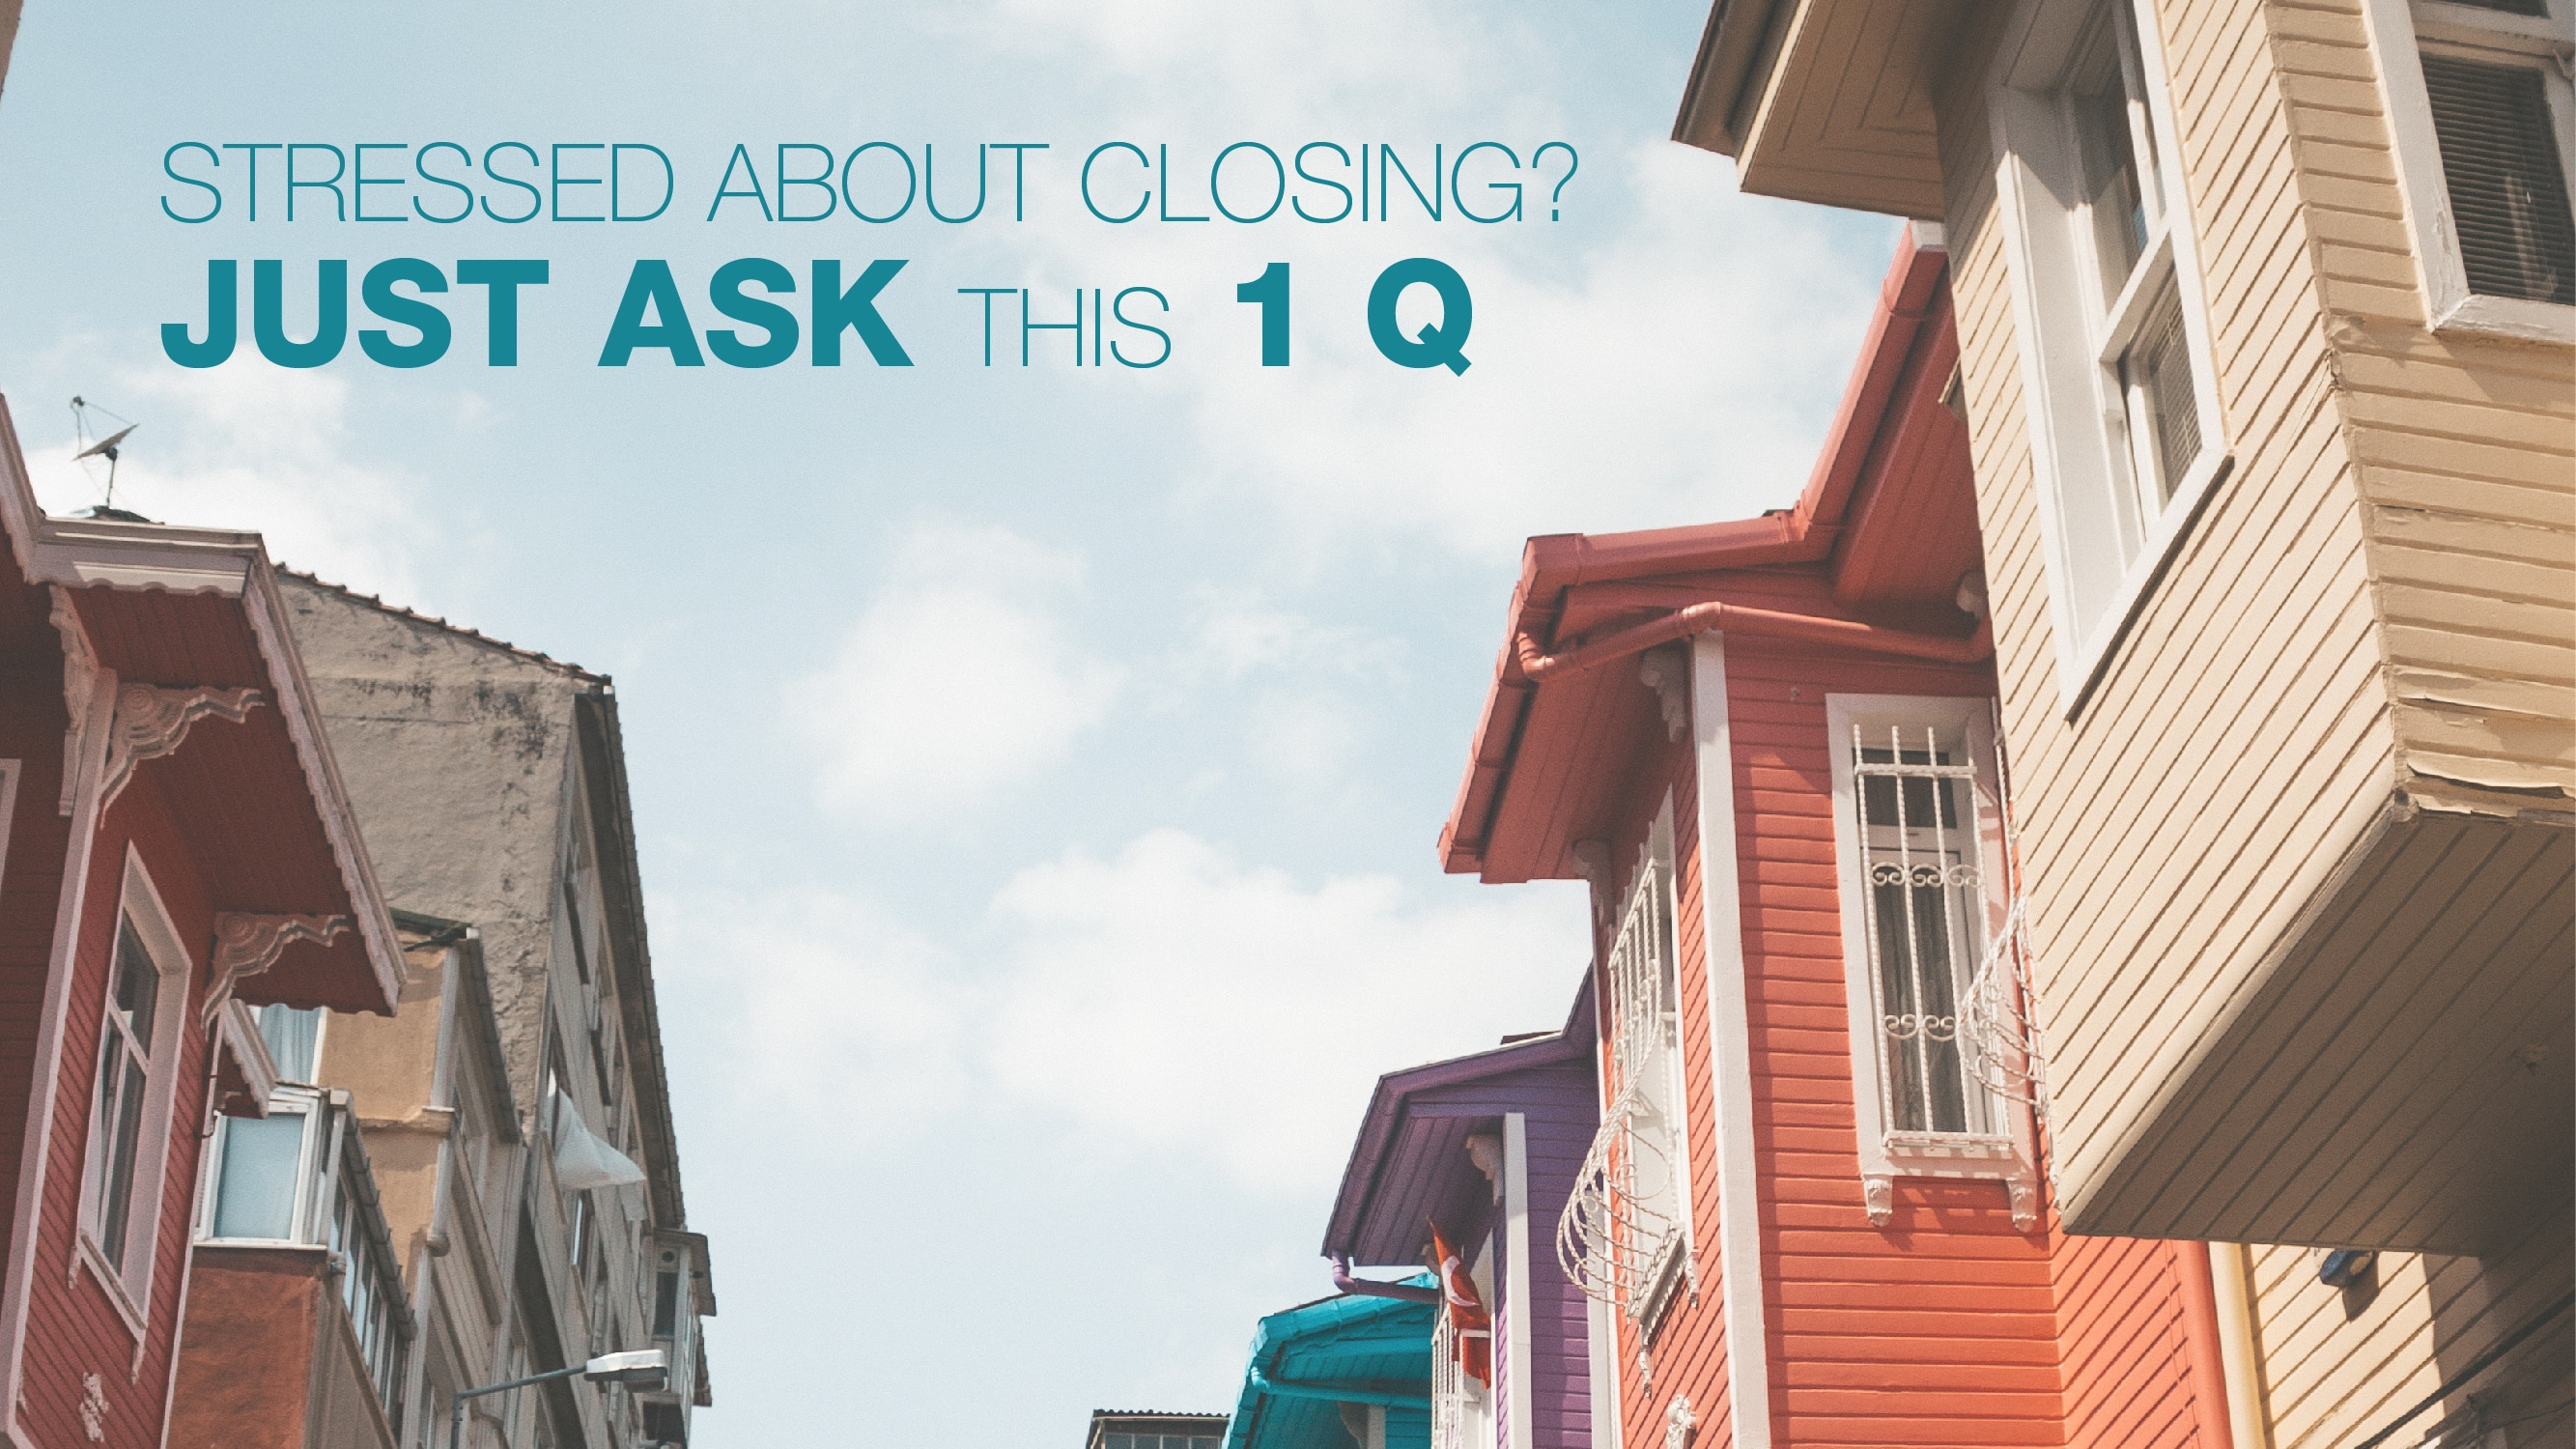 Stressed about closing? Just ask this 1 Q